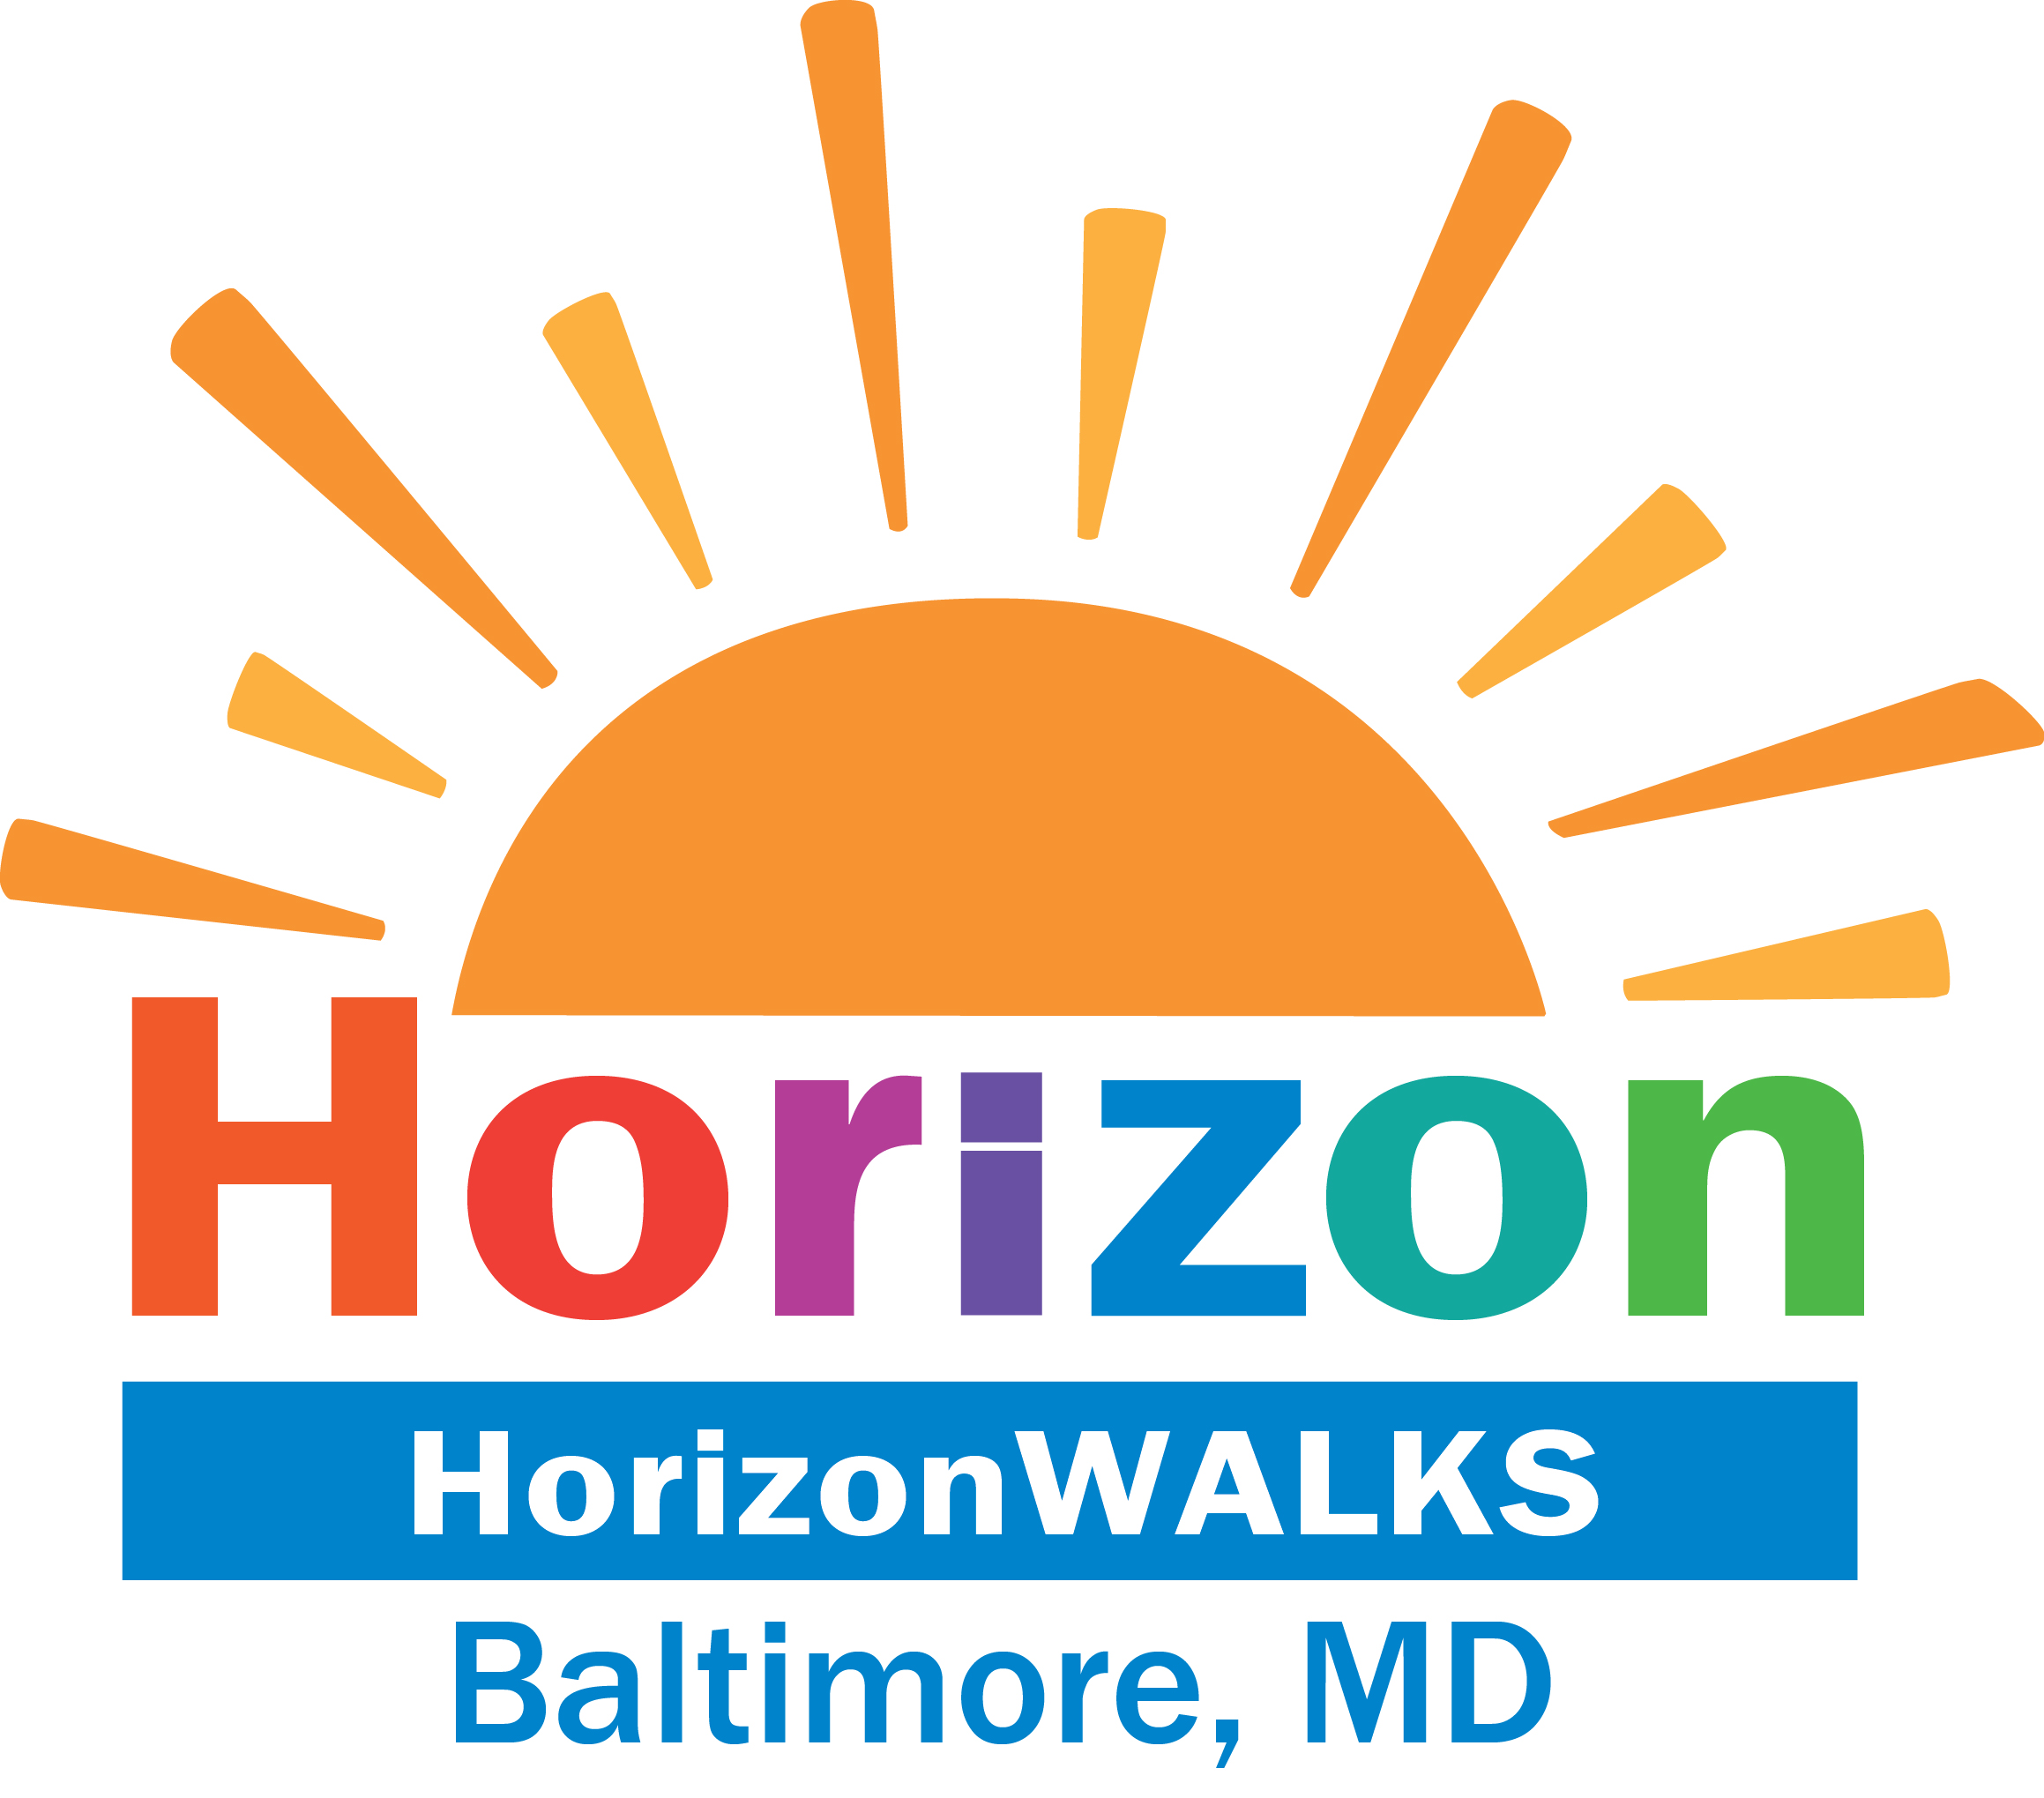 HorizonWalks - Baltimore